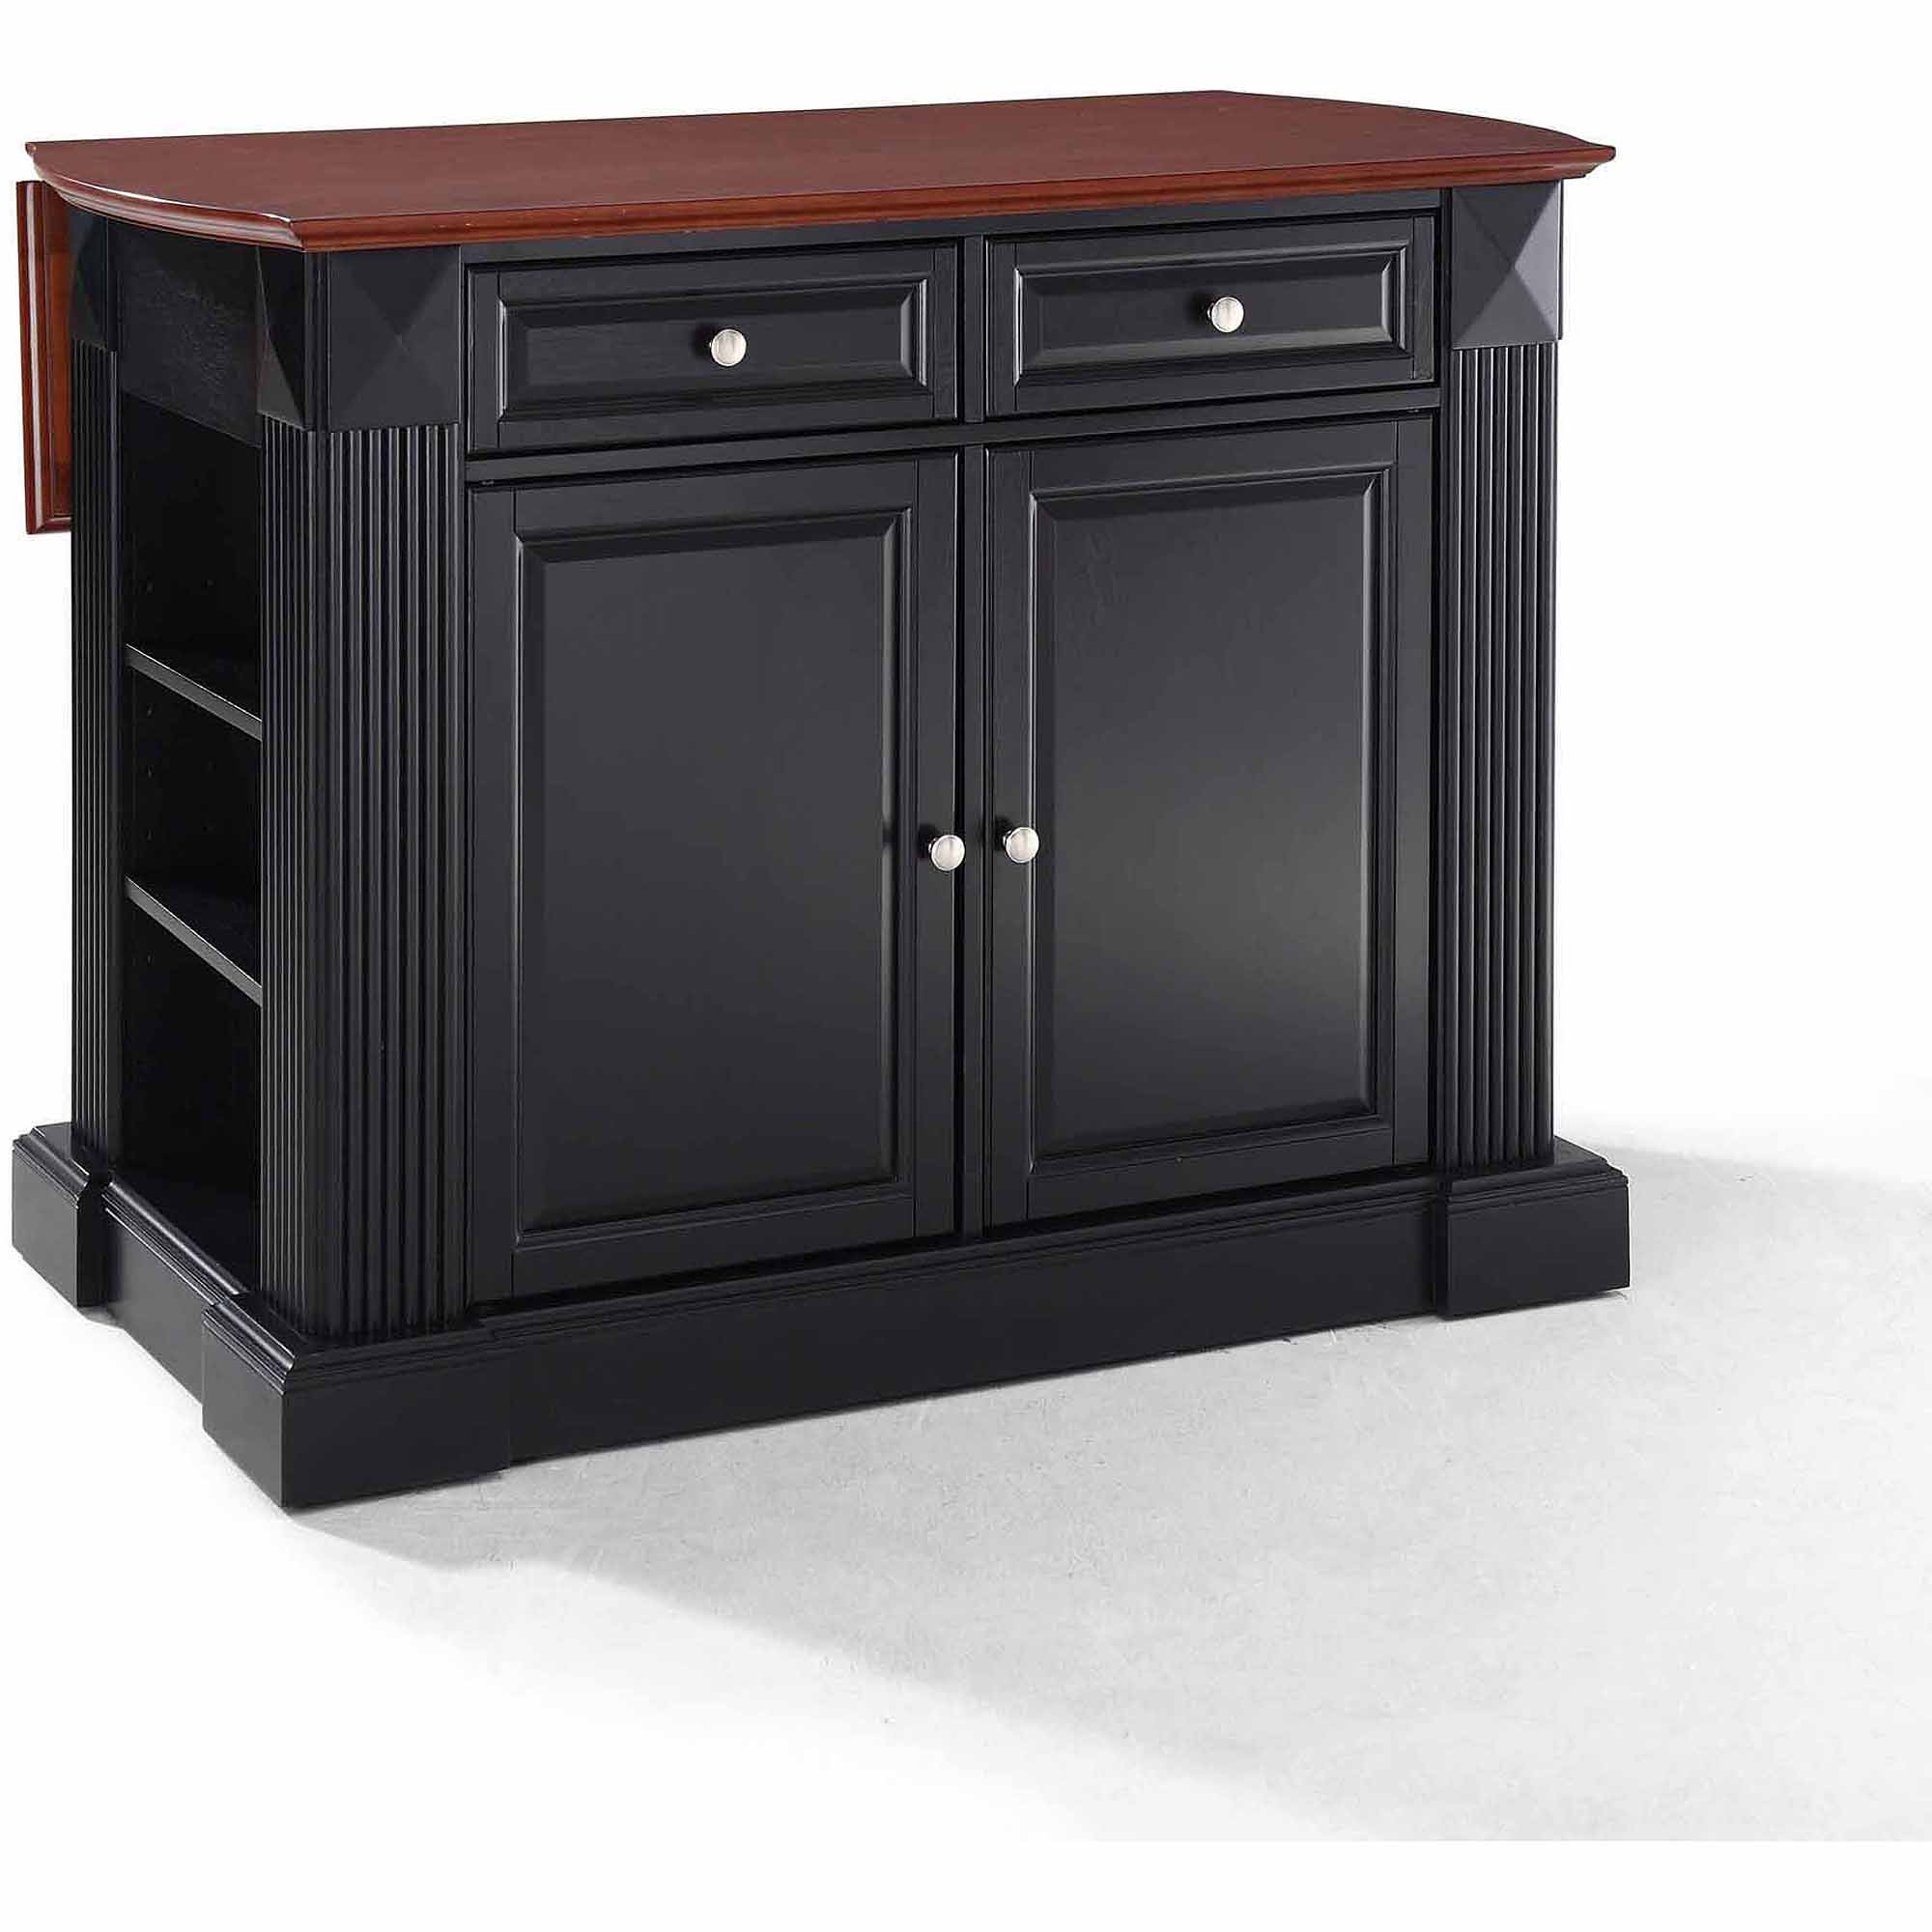 Crosley Furniture Kitchen Island Crosley Drop Leaf Breakfast Bar Top Kitchen Island In Black Best